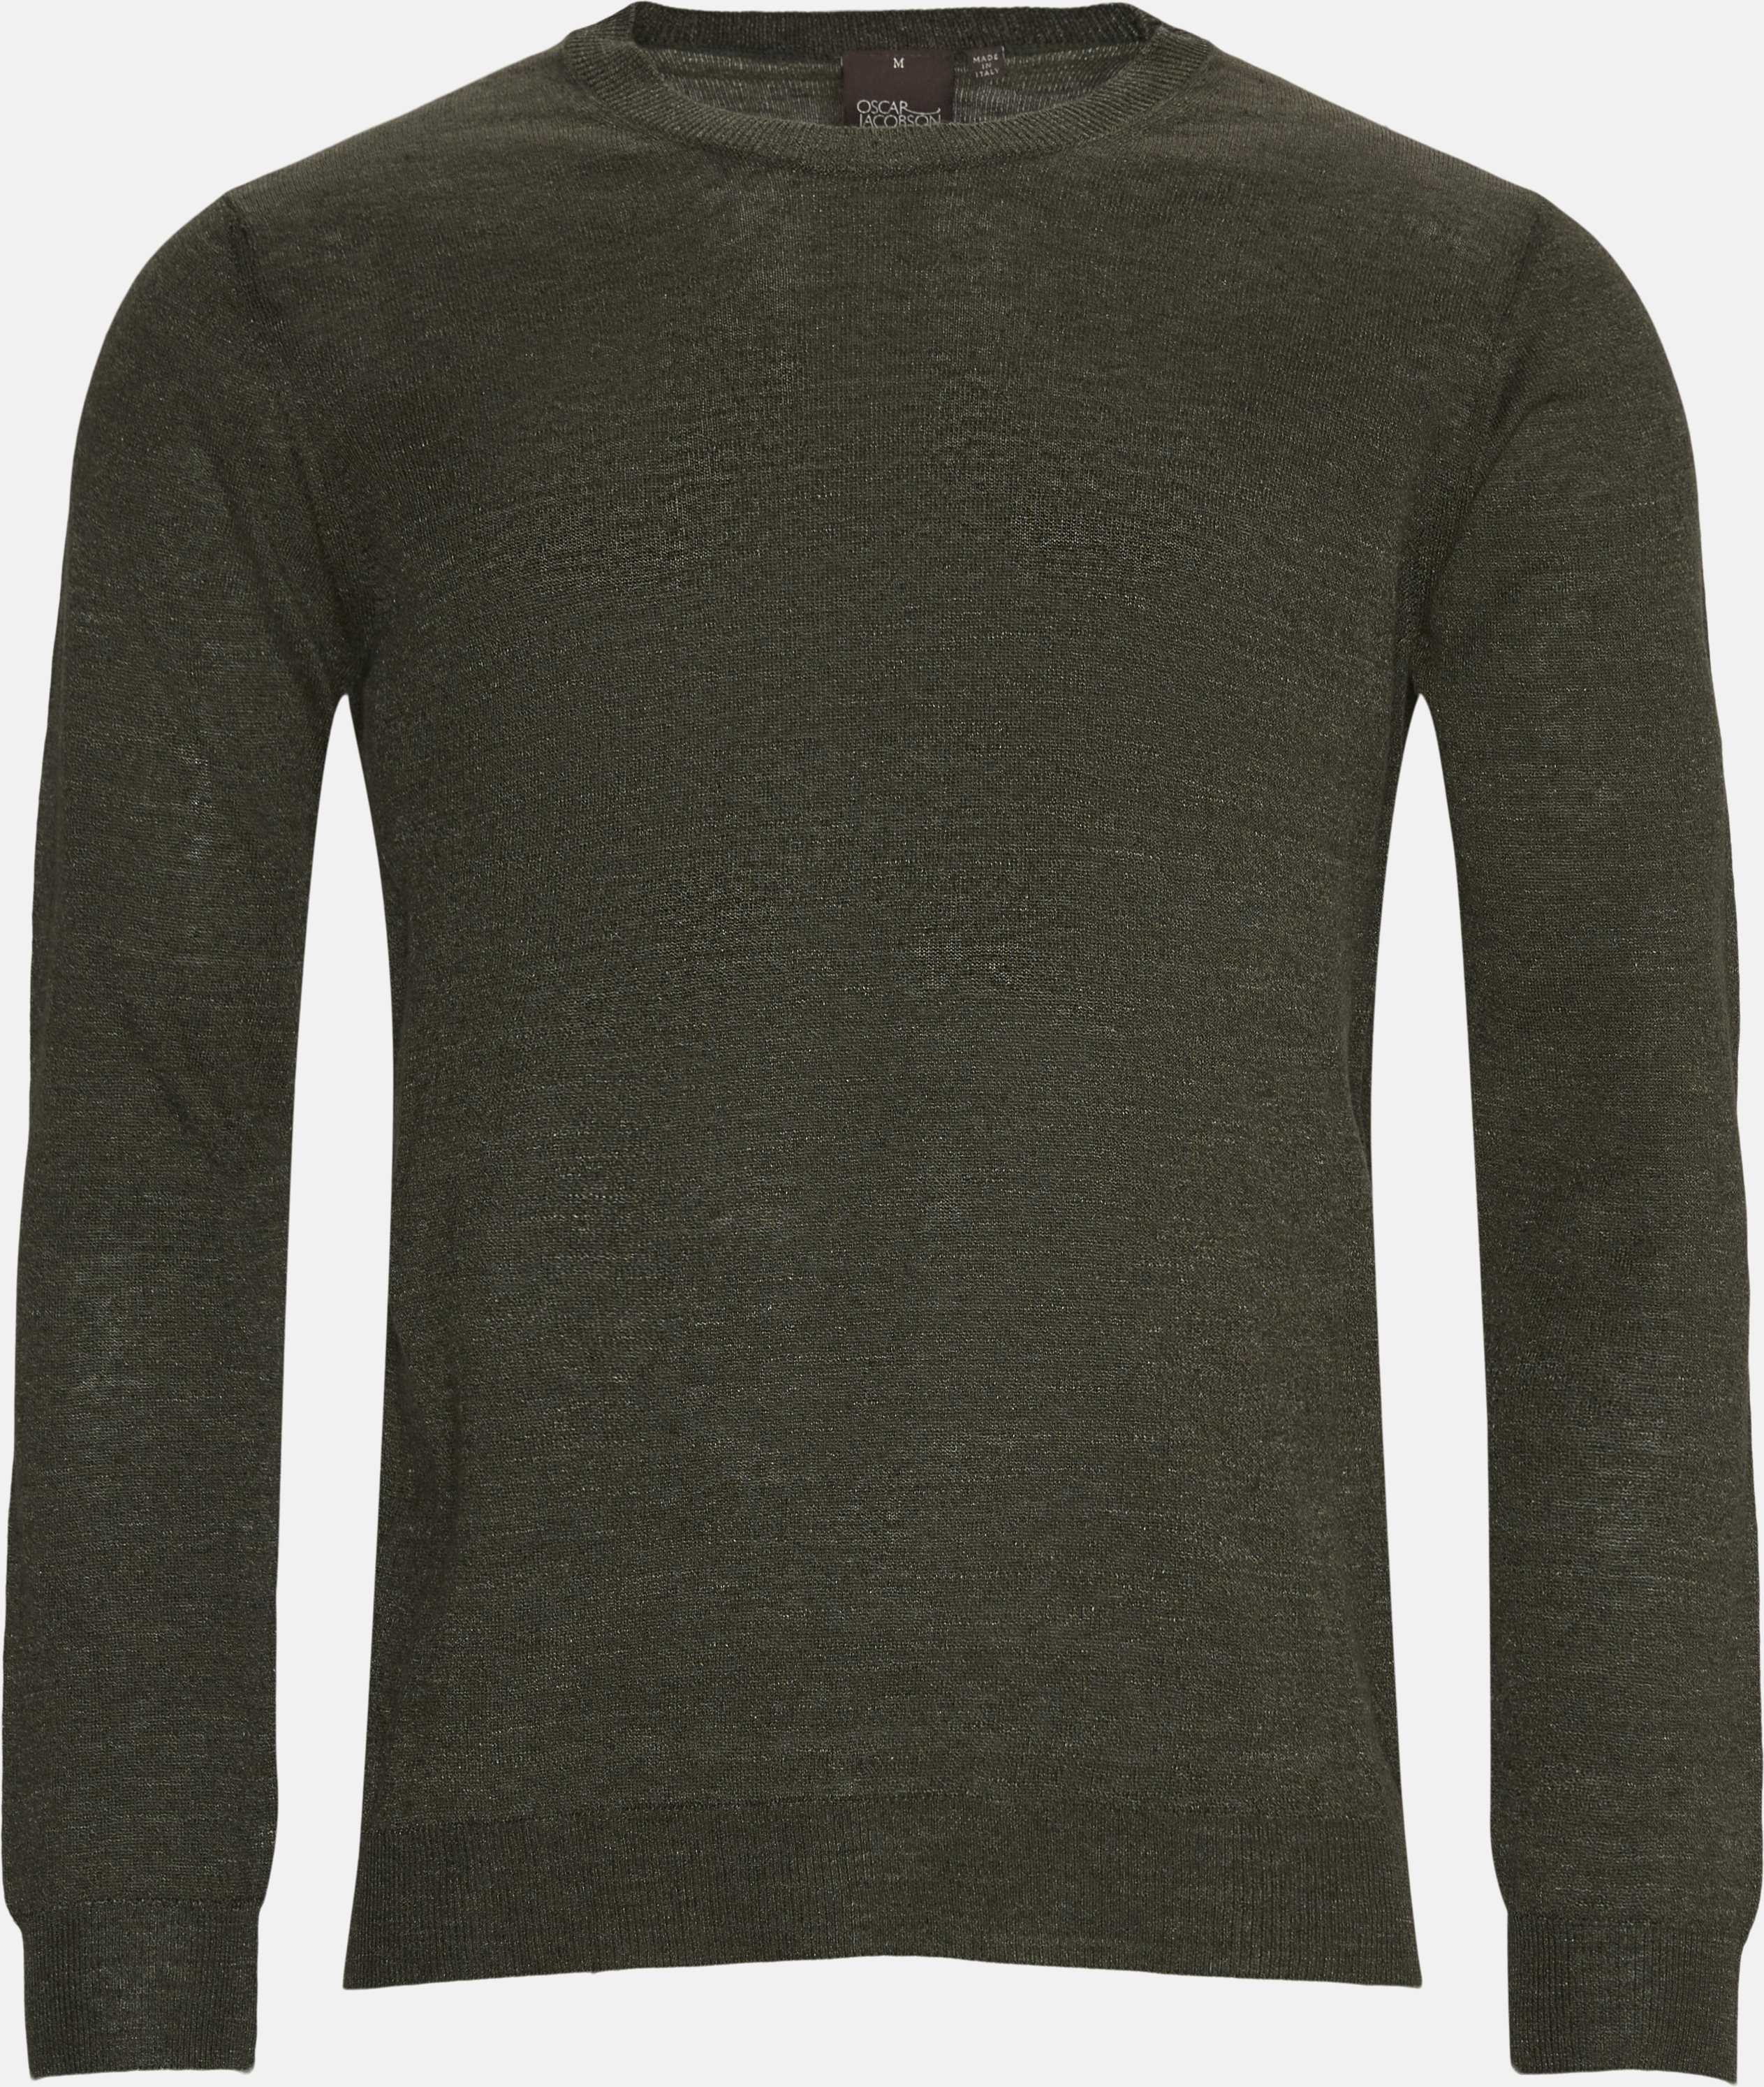 Custer Crewneck - Strik - Regular - Army